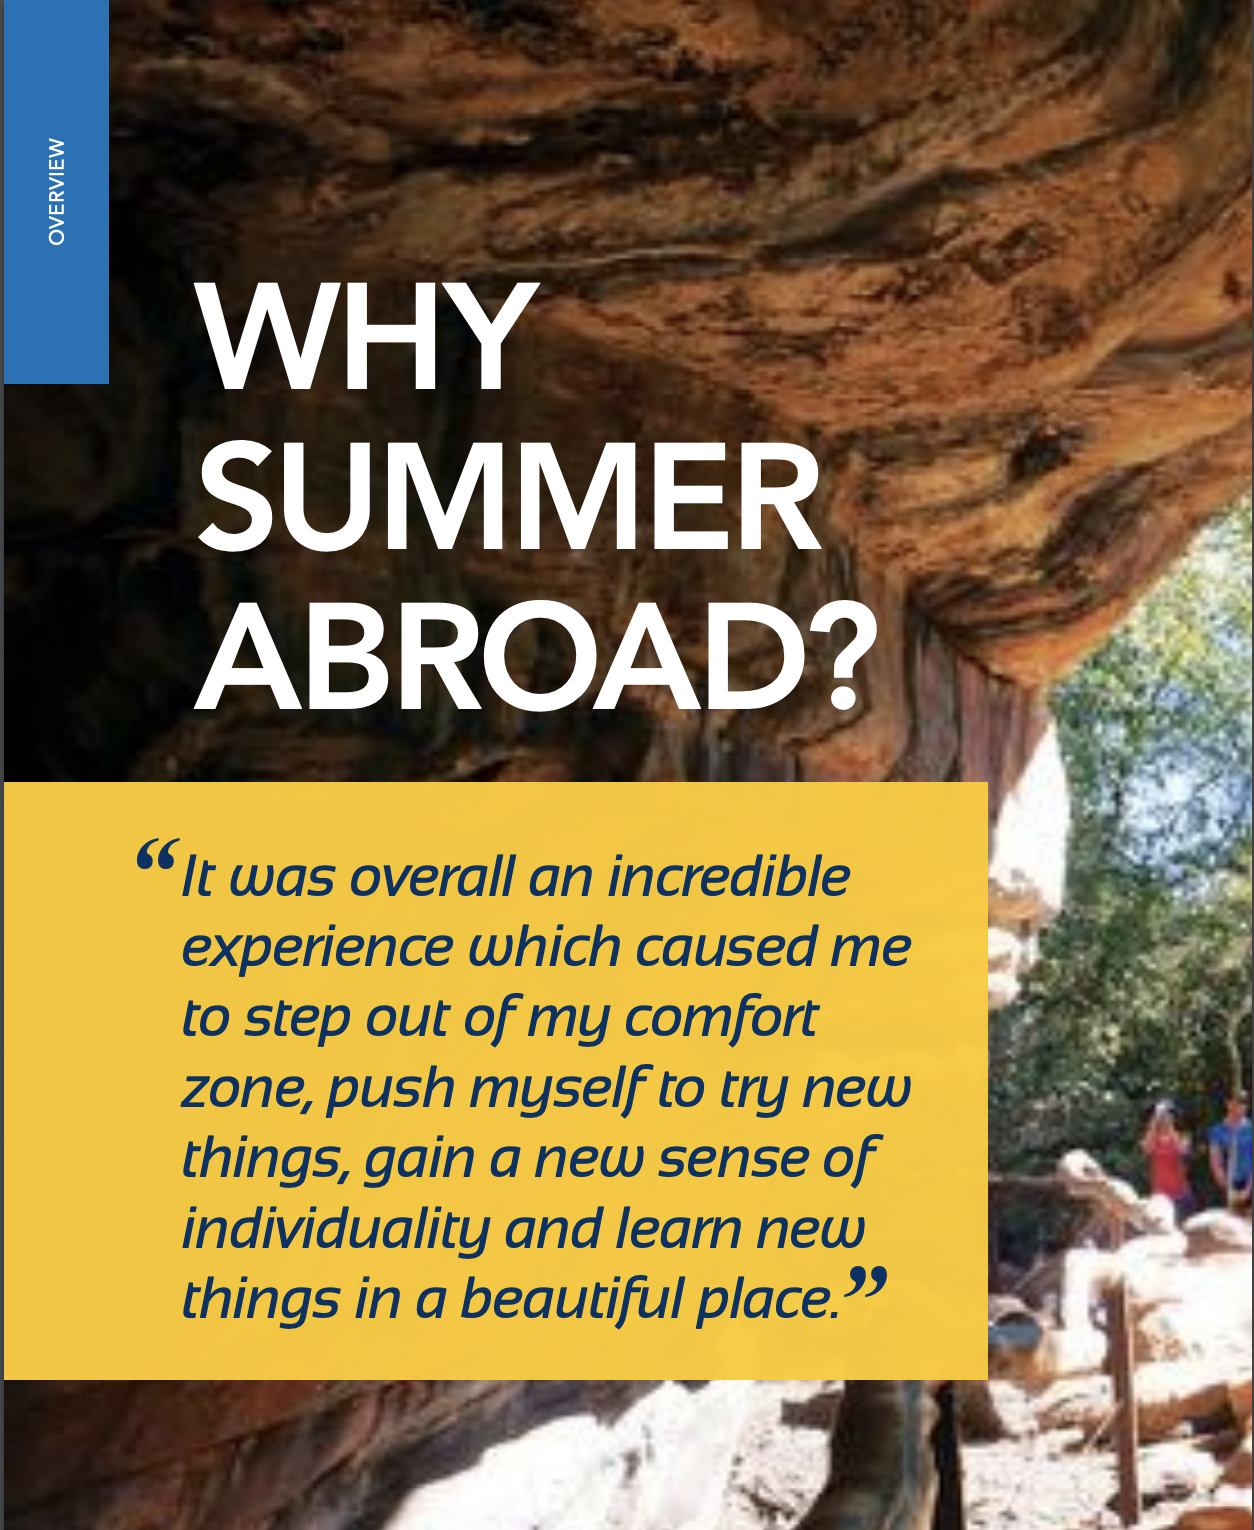 Brochure describing the benefits of Summer Abroad